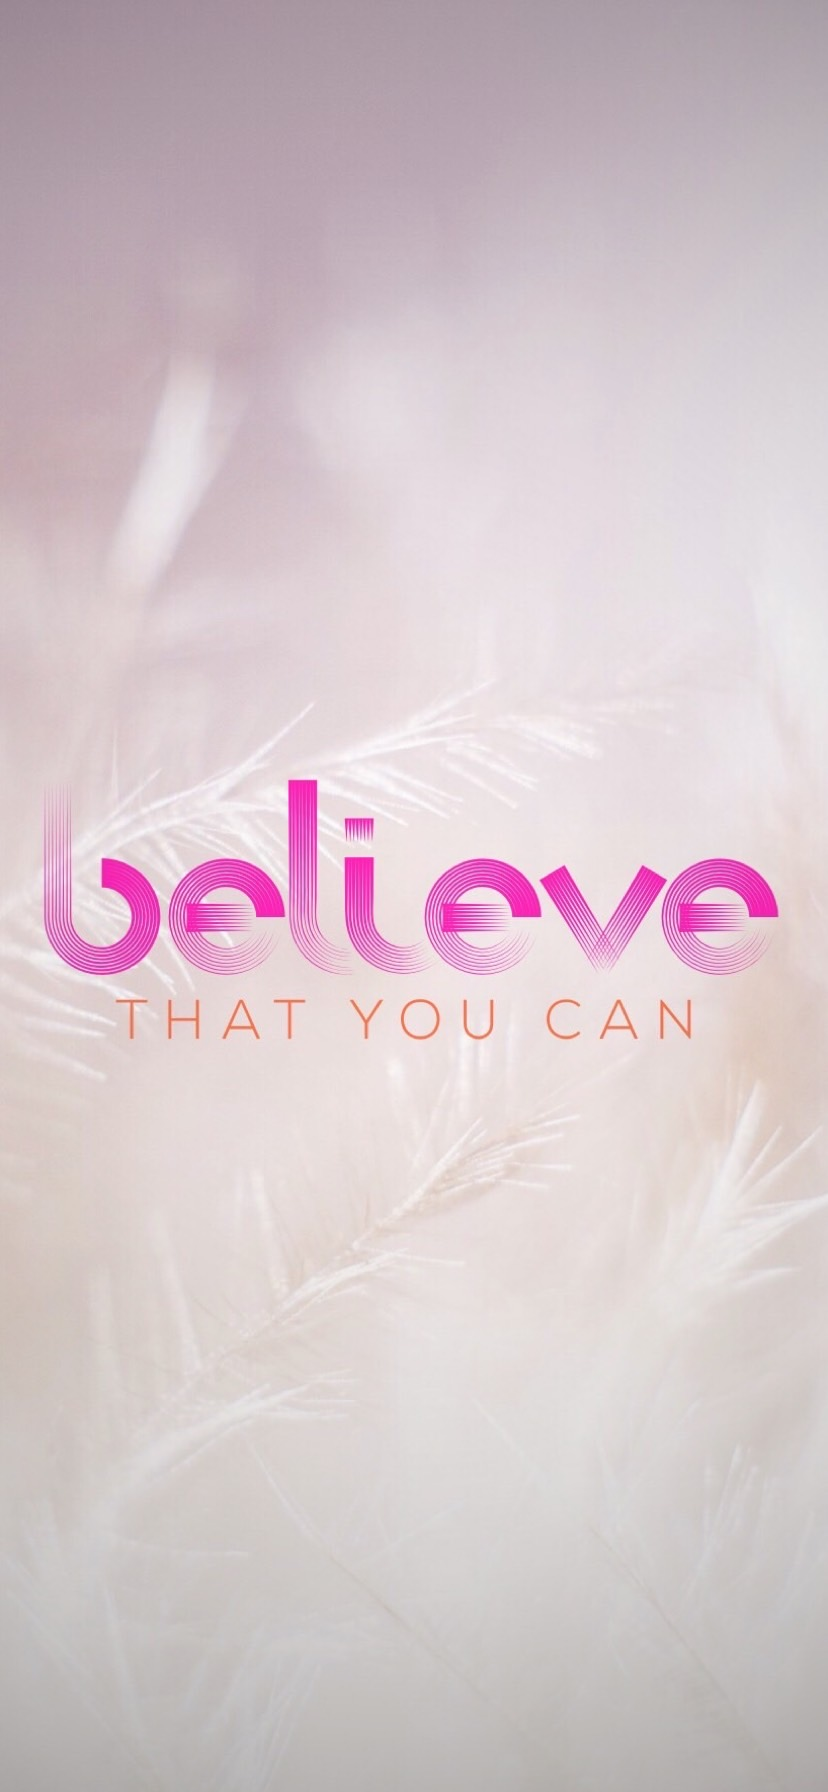 Wallpaper - Believe that you can